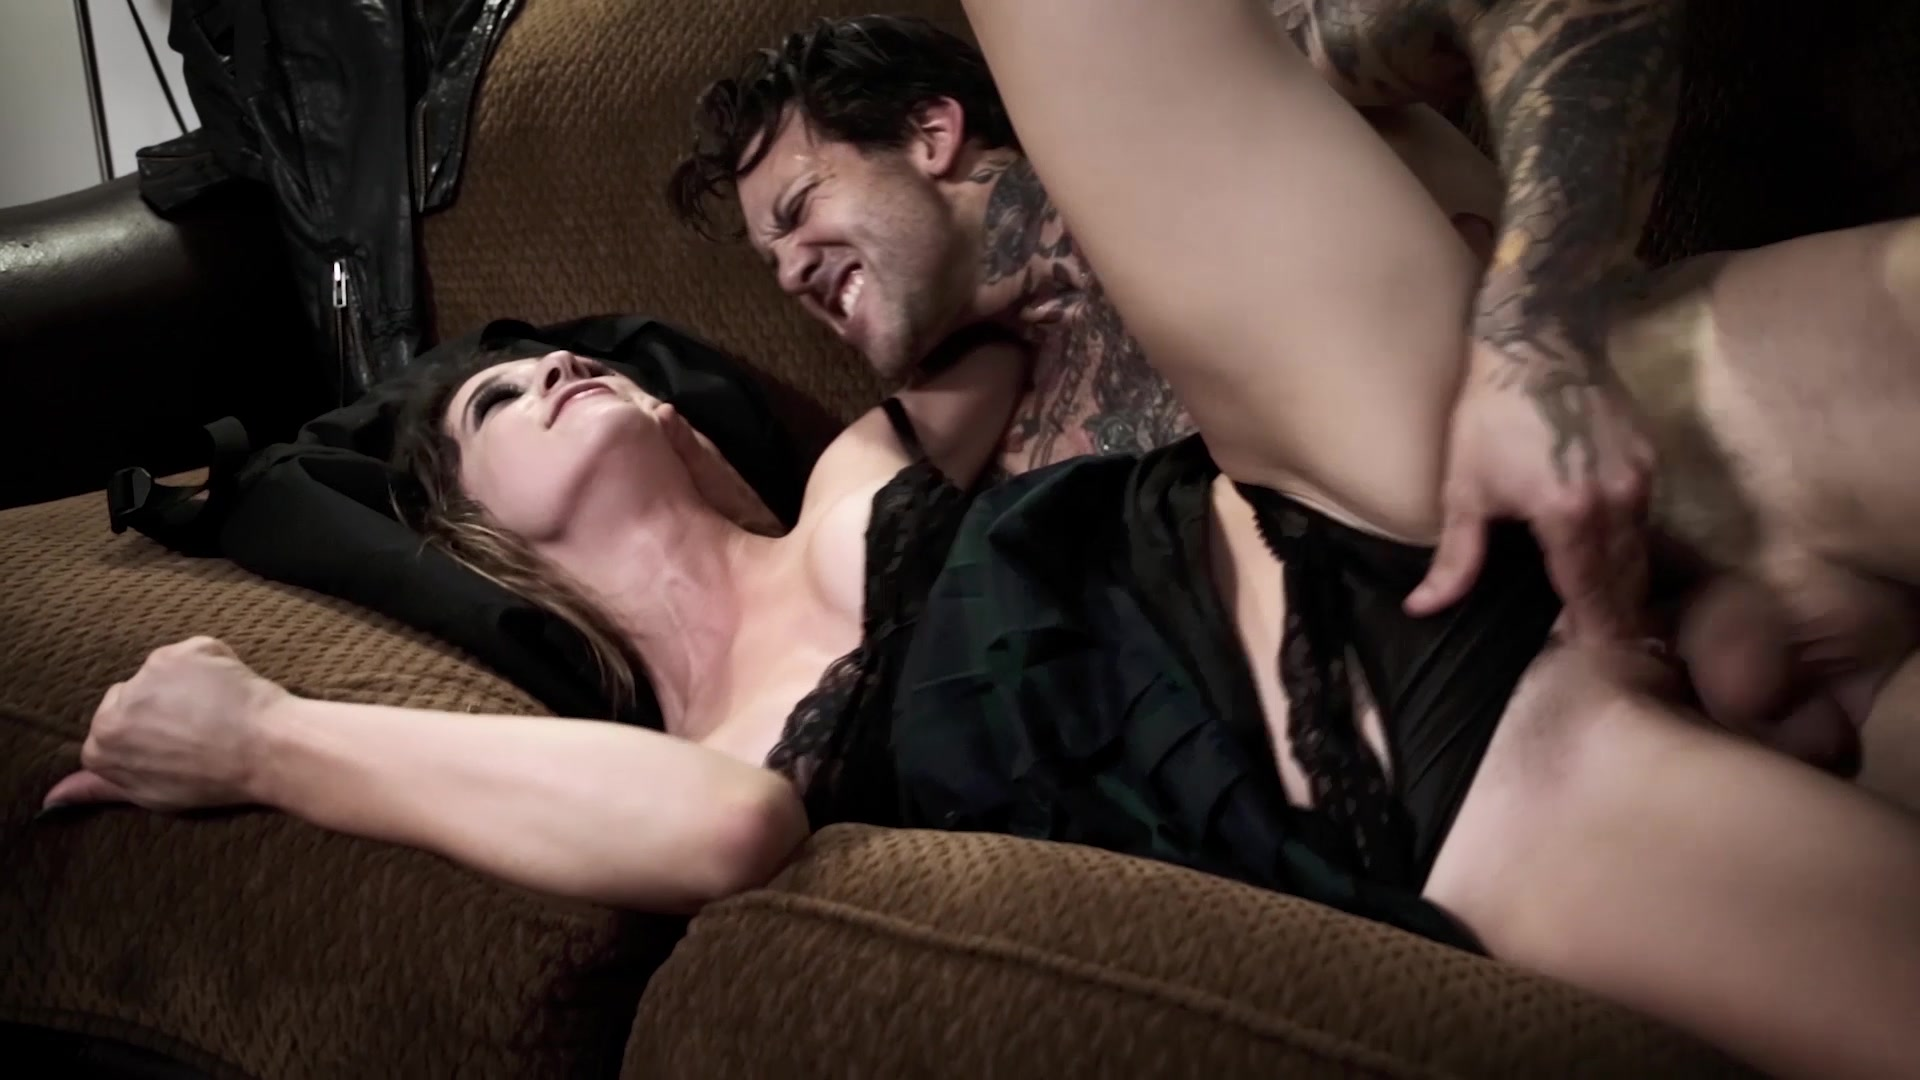 Scene with Small Hands and Kristen Scott (II) - image 20 out of 20